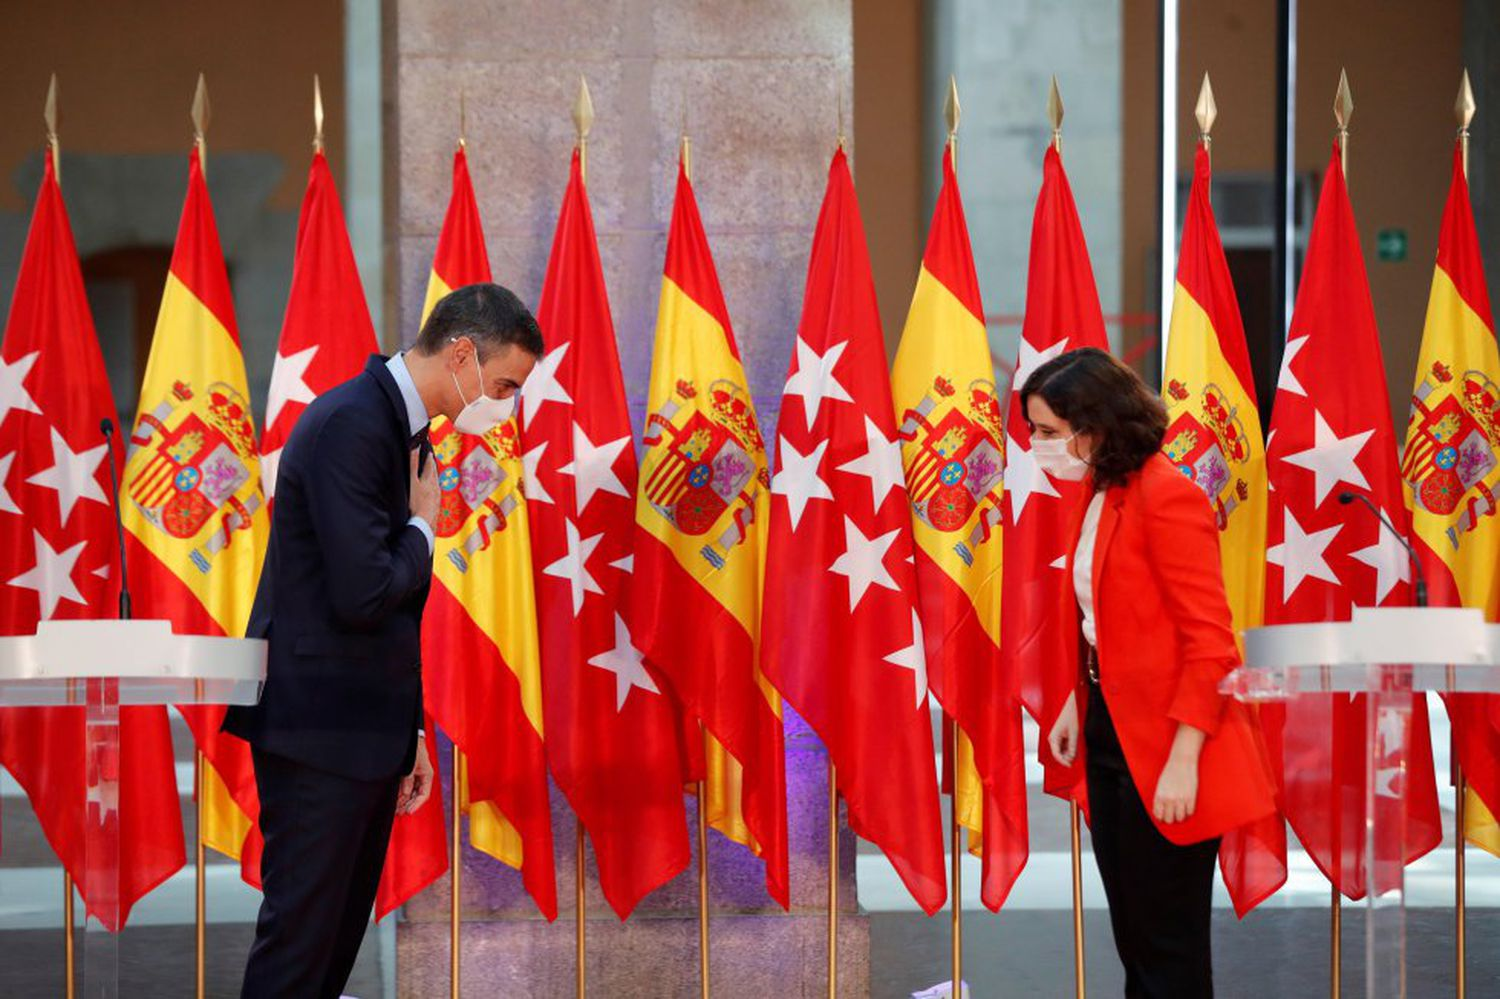 Spanish prime minister Pedro Sánchez and Madrid regional premier Isabel Díaz Ayuso at their meeting on Monday.